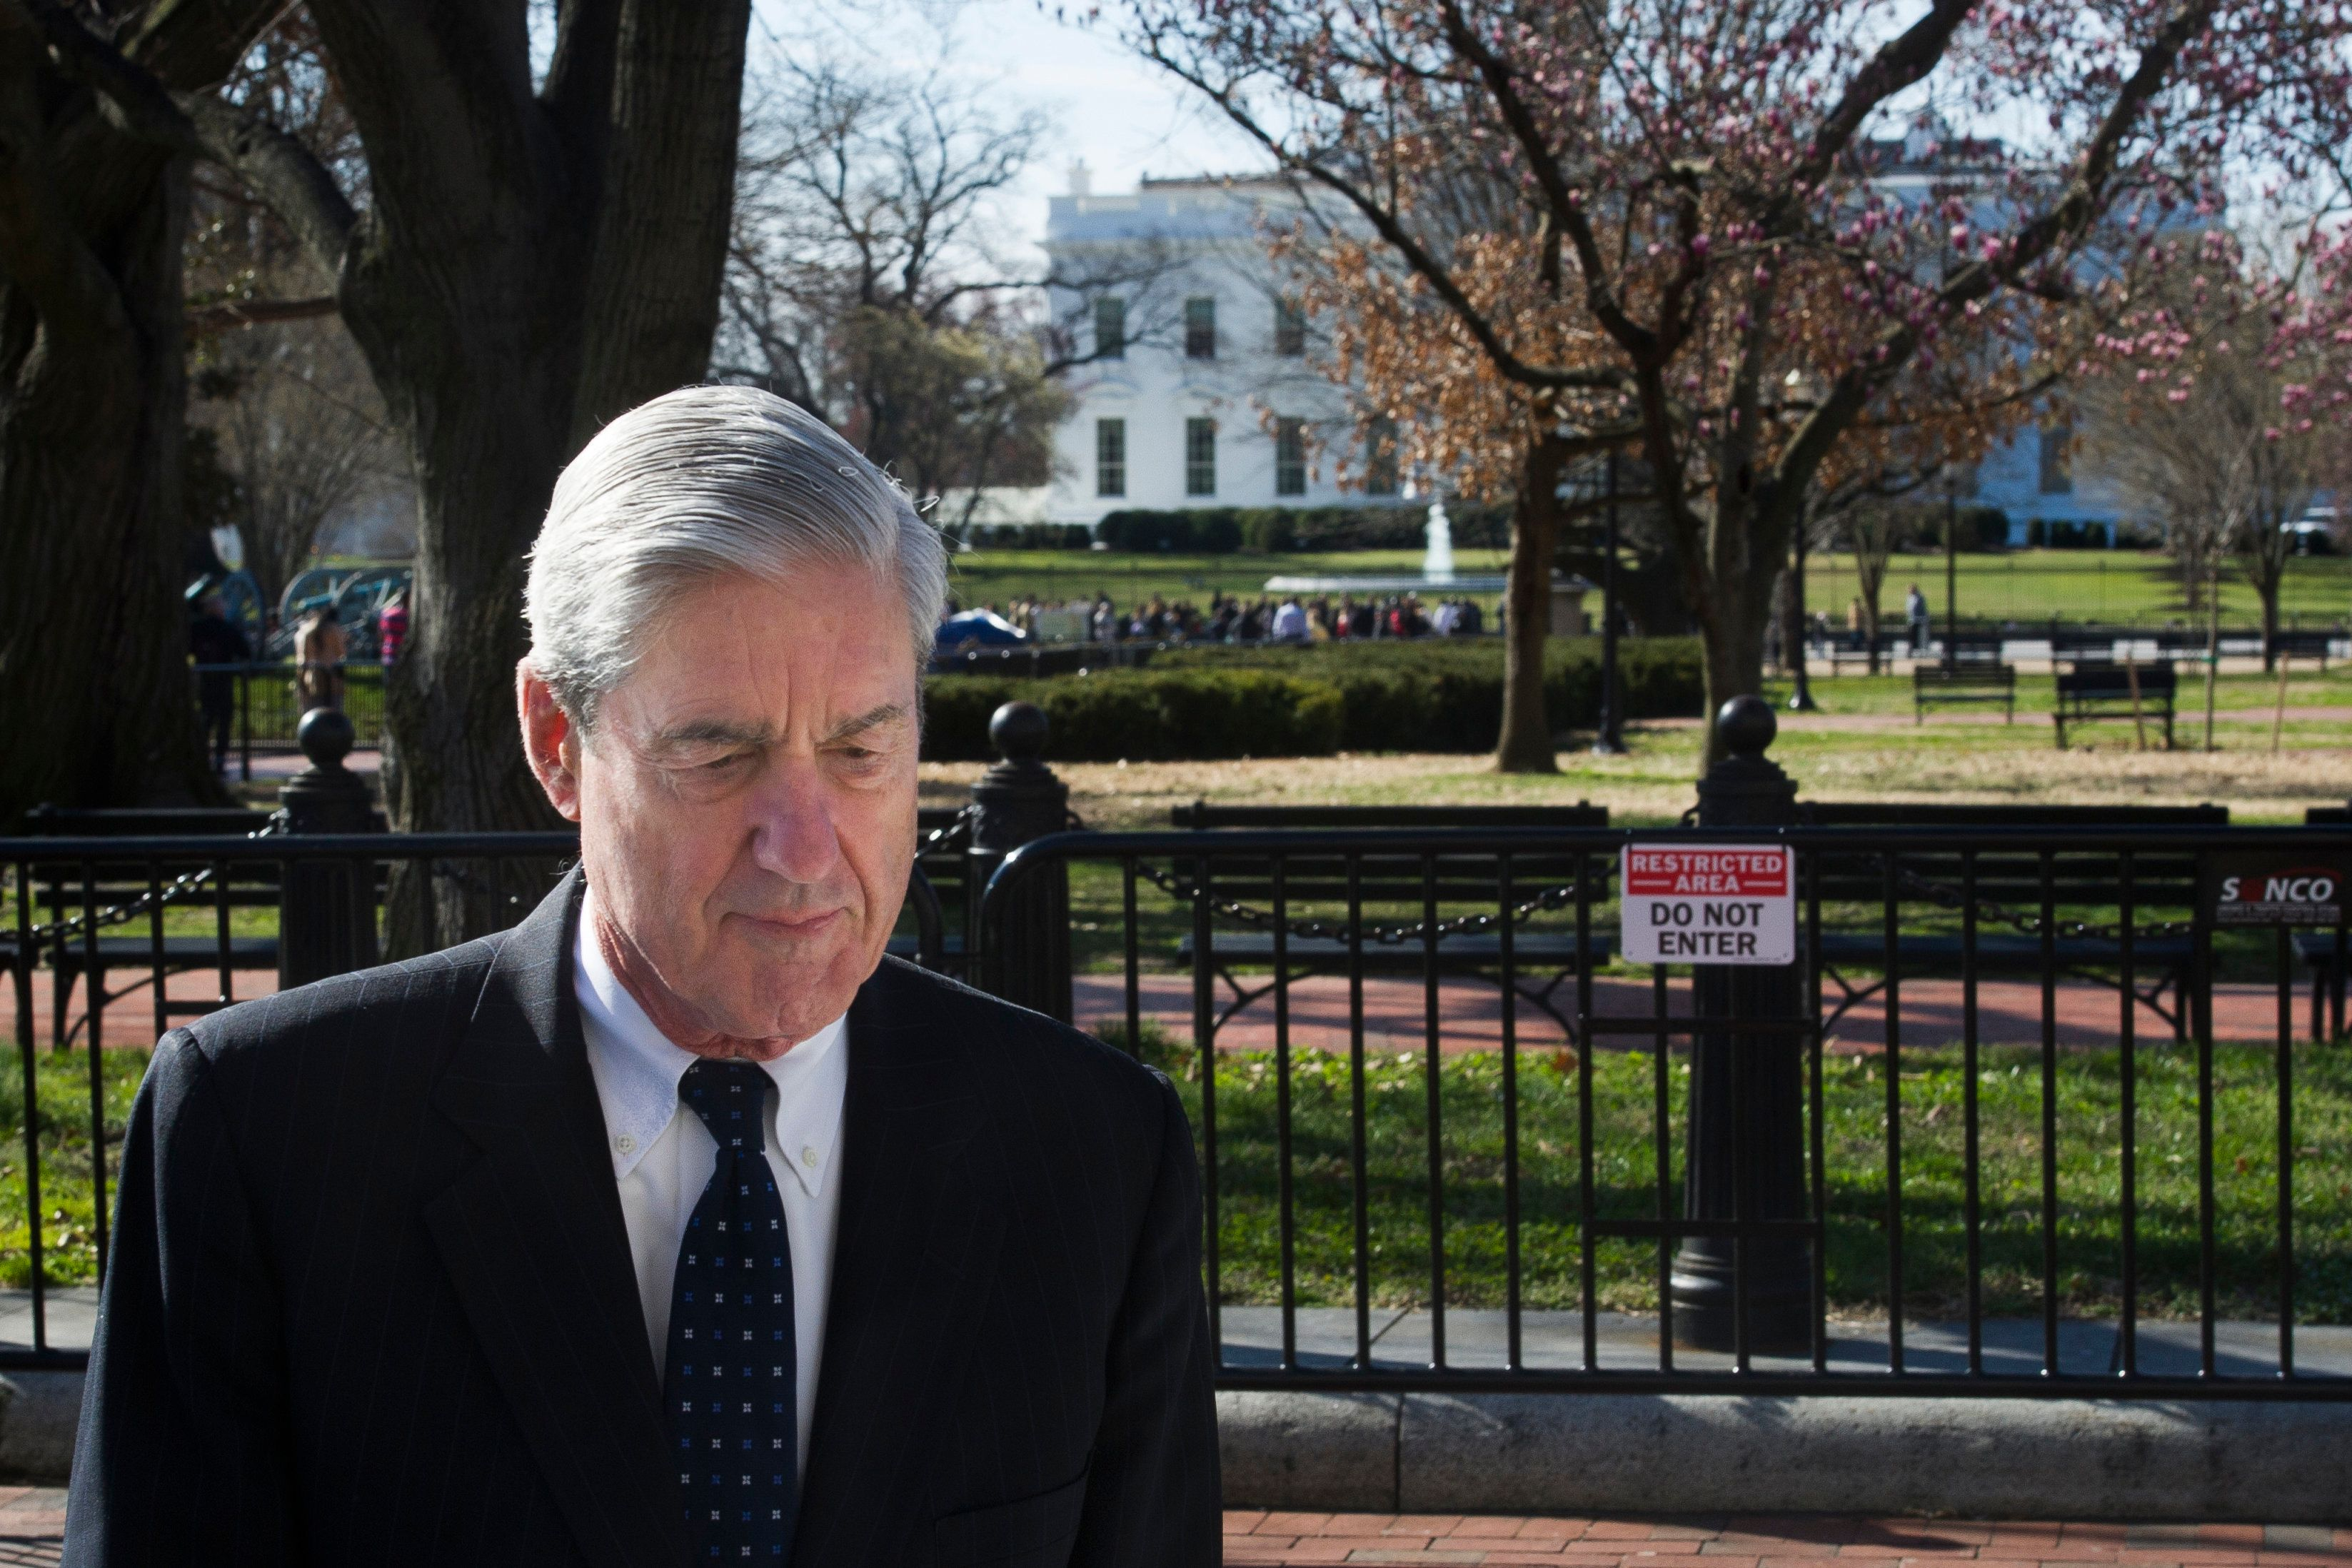 Special counsel Robert Mueller's job is done, but there's still debate ahead for Congress and the Justice Department.